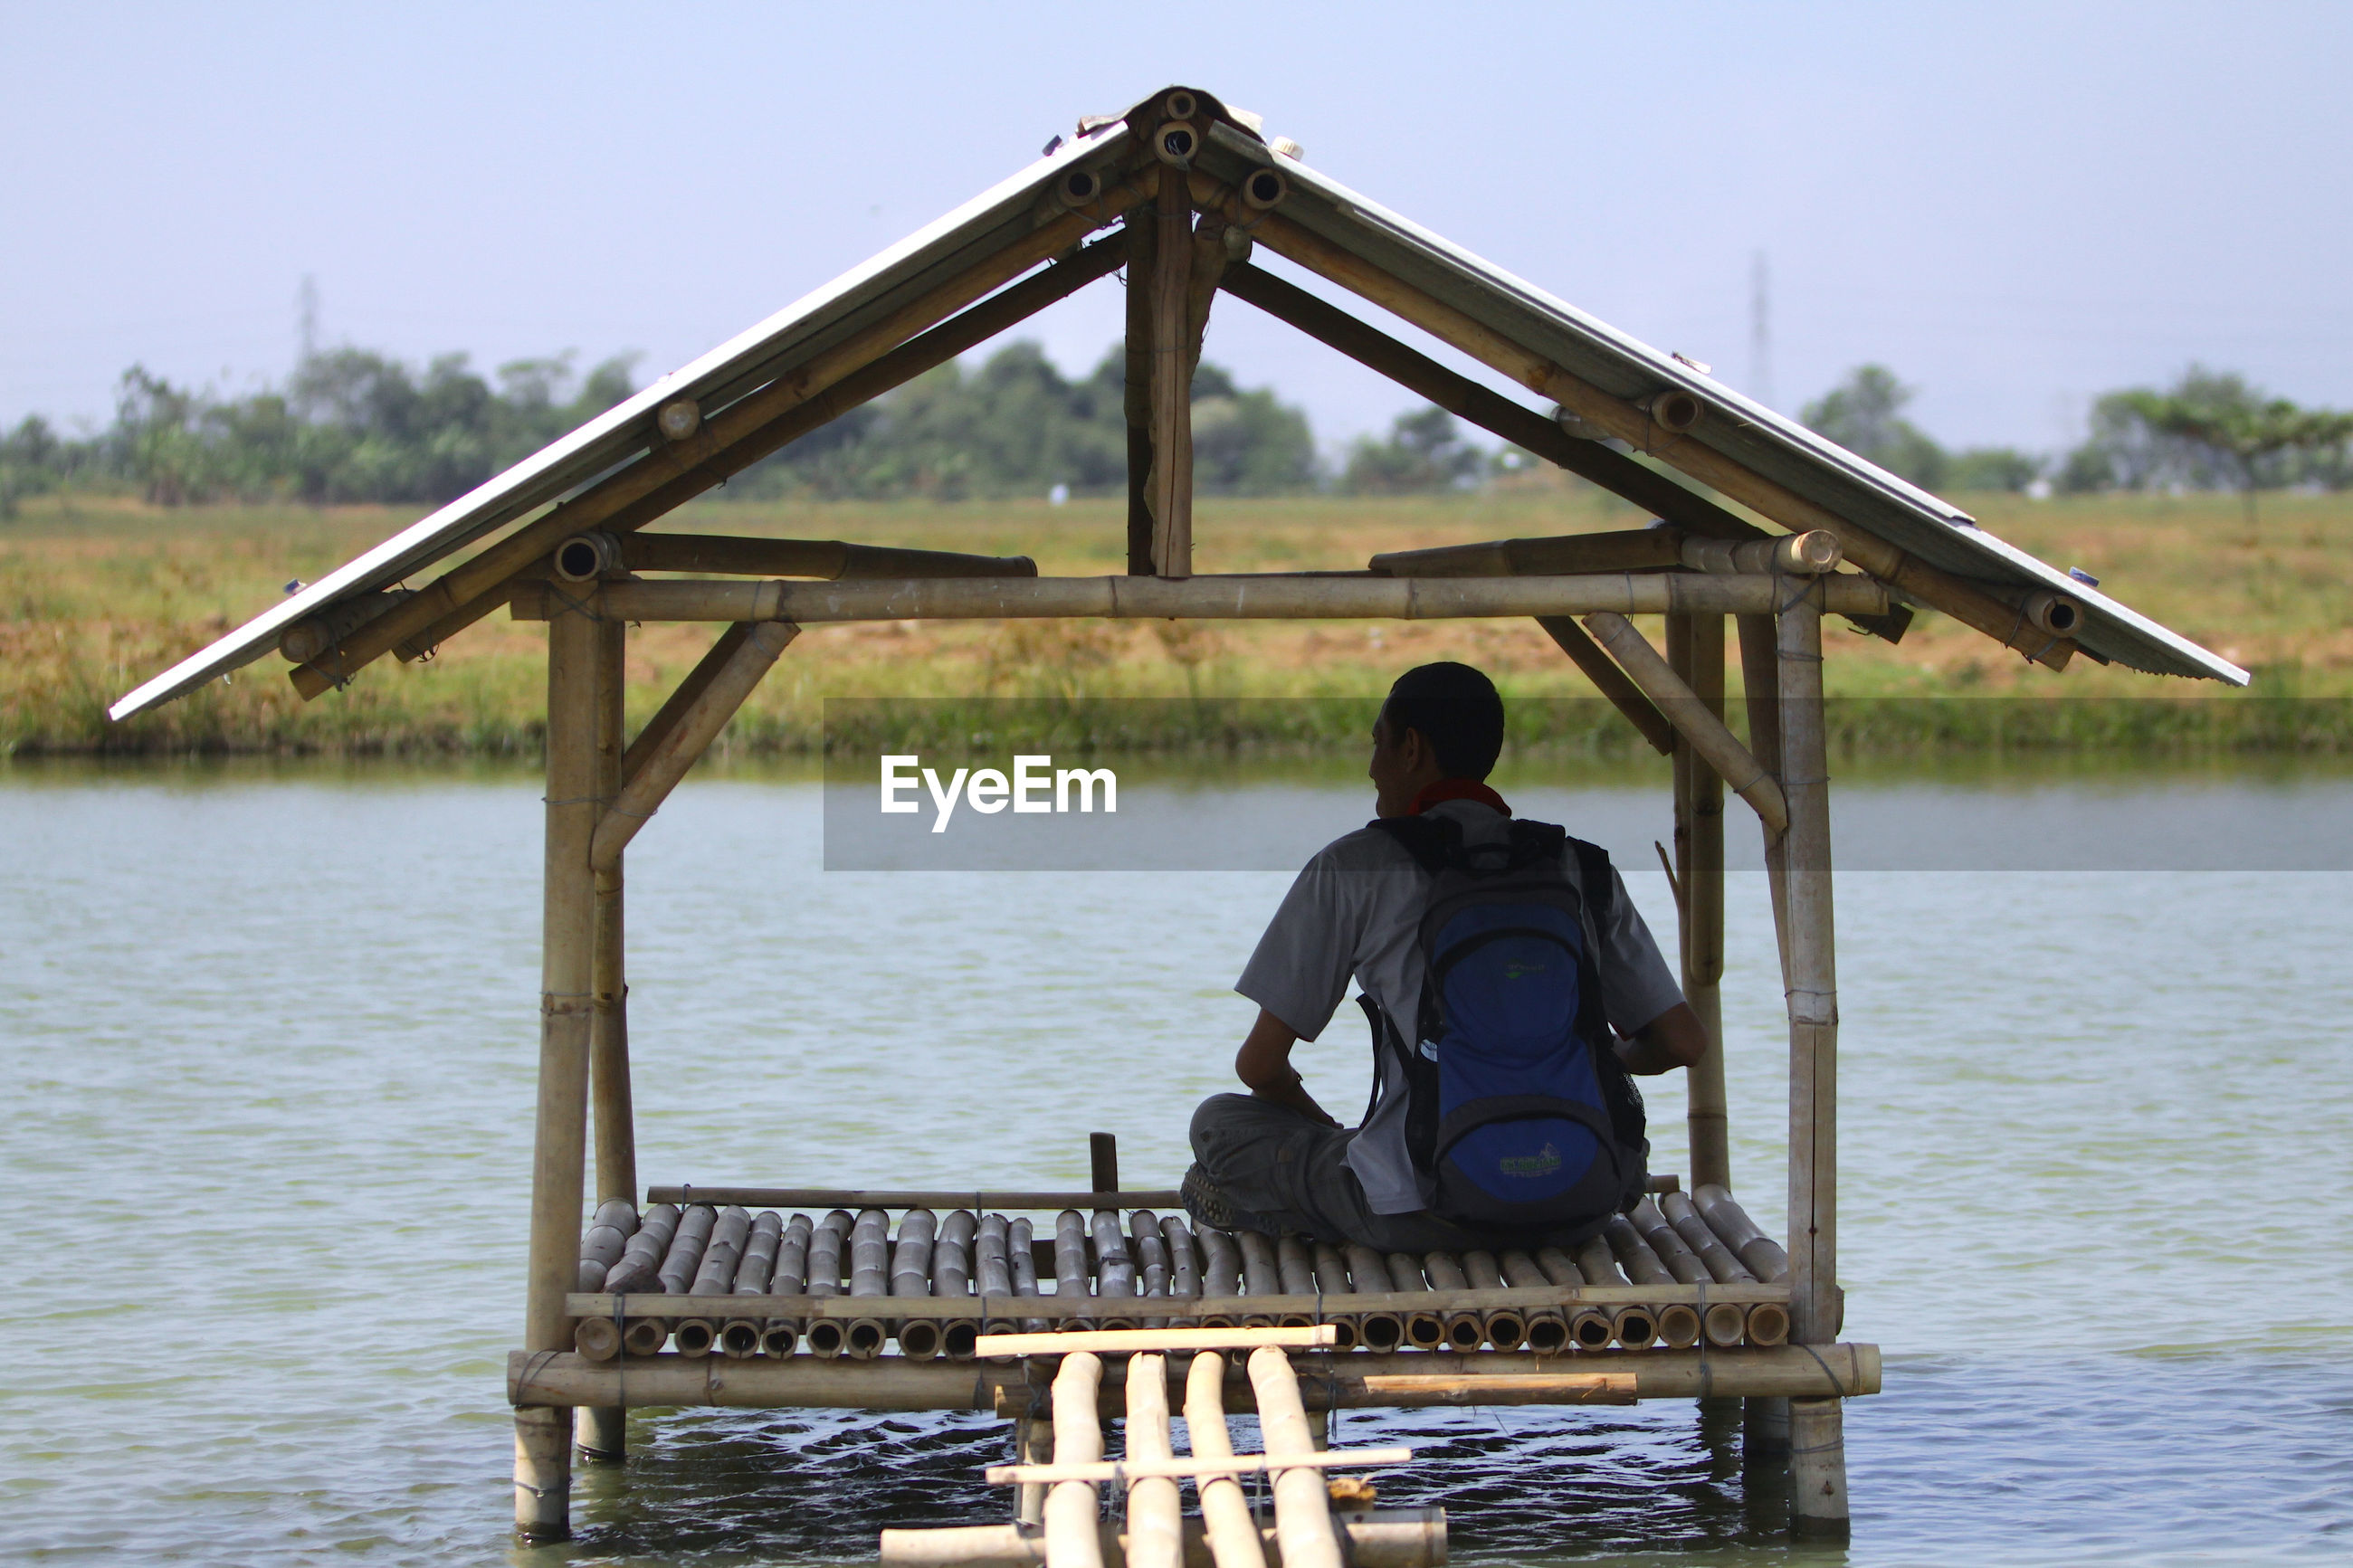 Rear view of man sitting on built structure in river against sky